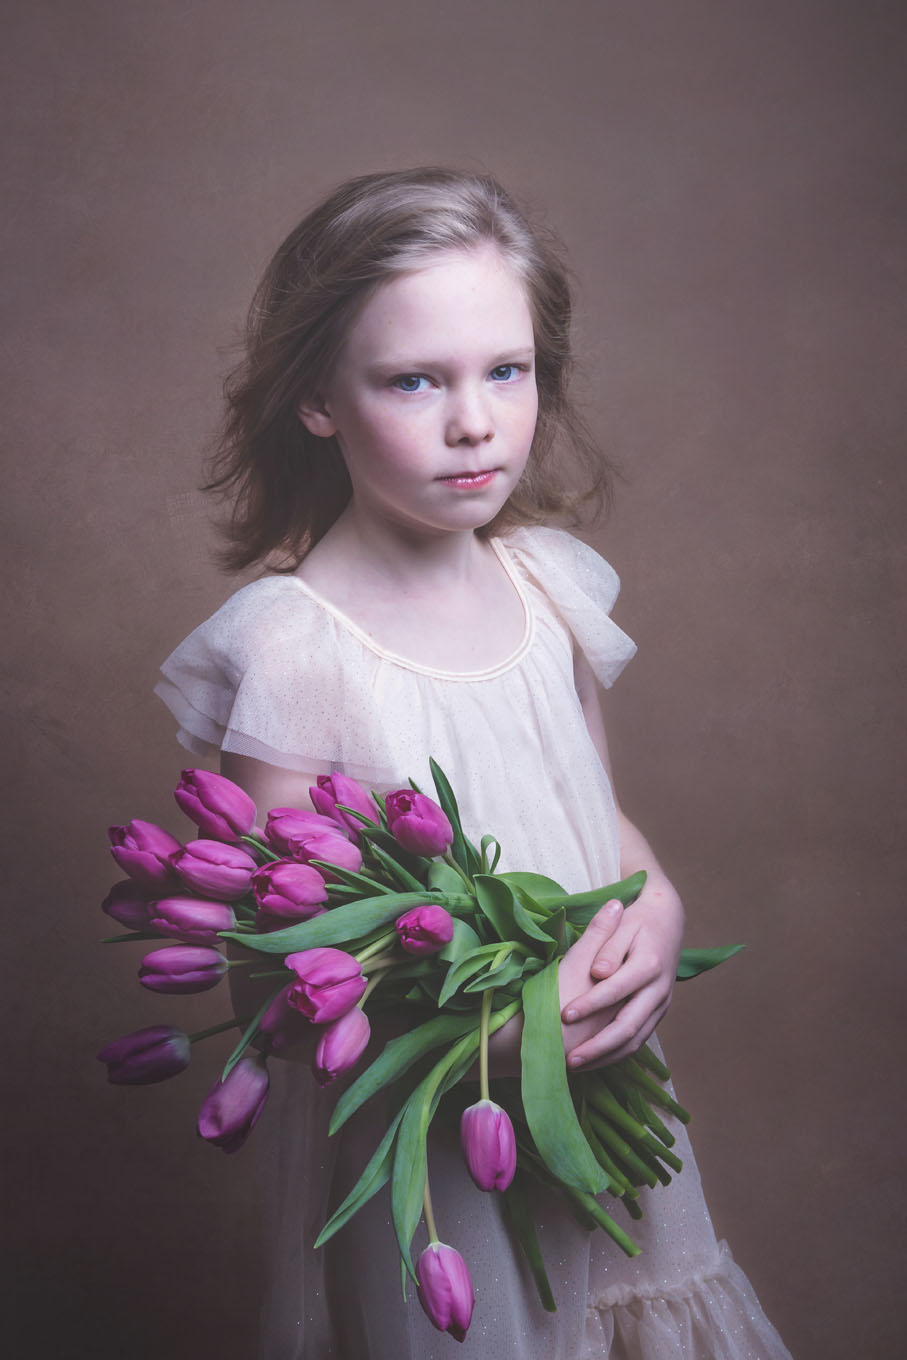 Portrait of a little girl in a studio with backdrop and lighting equipment